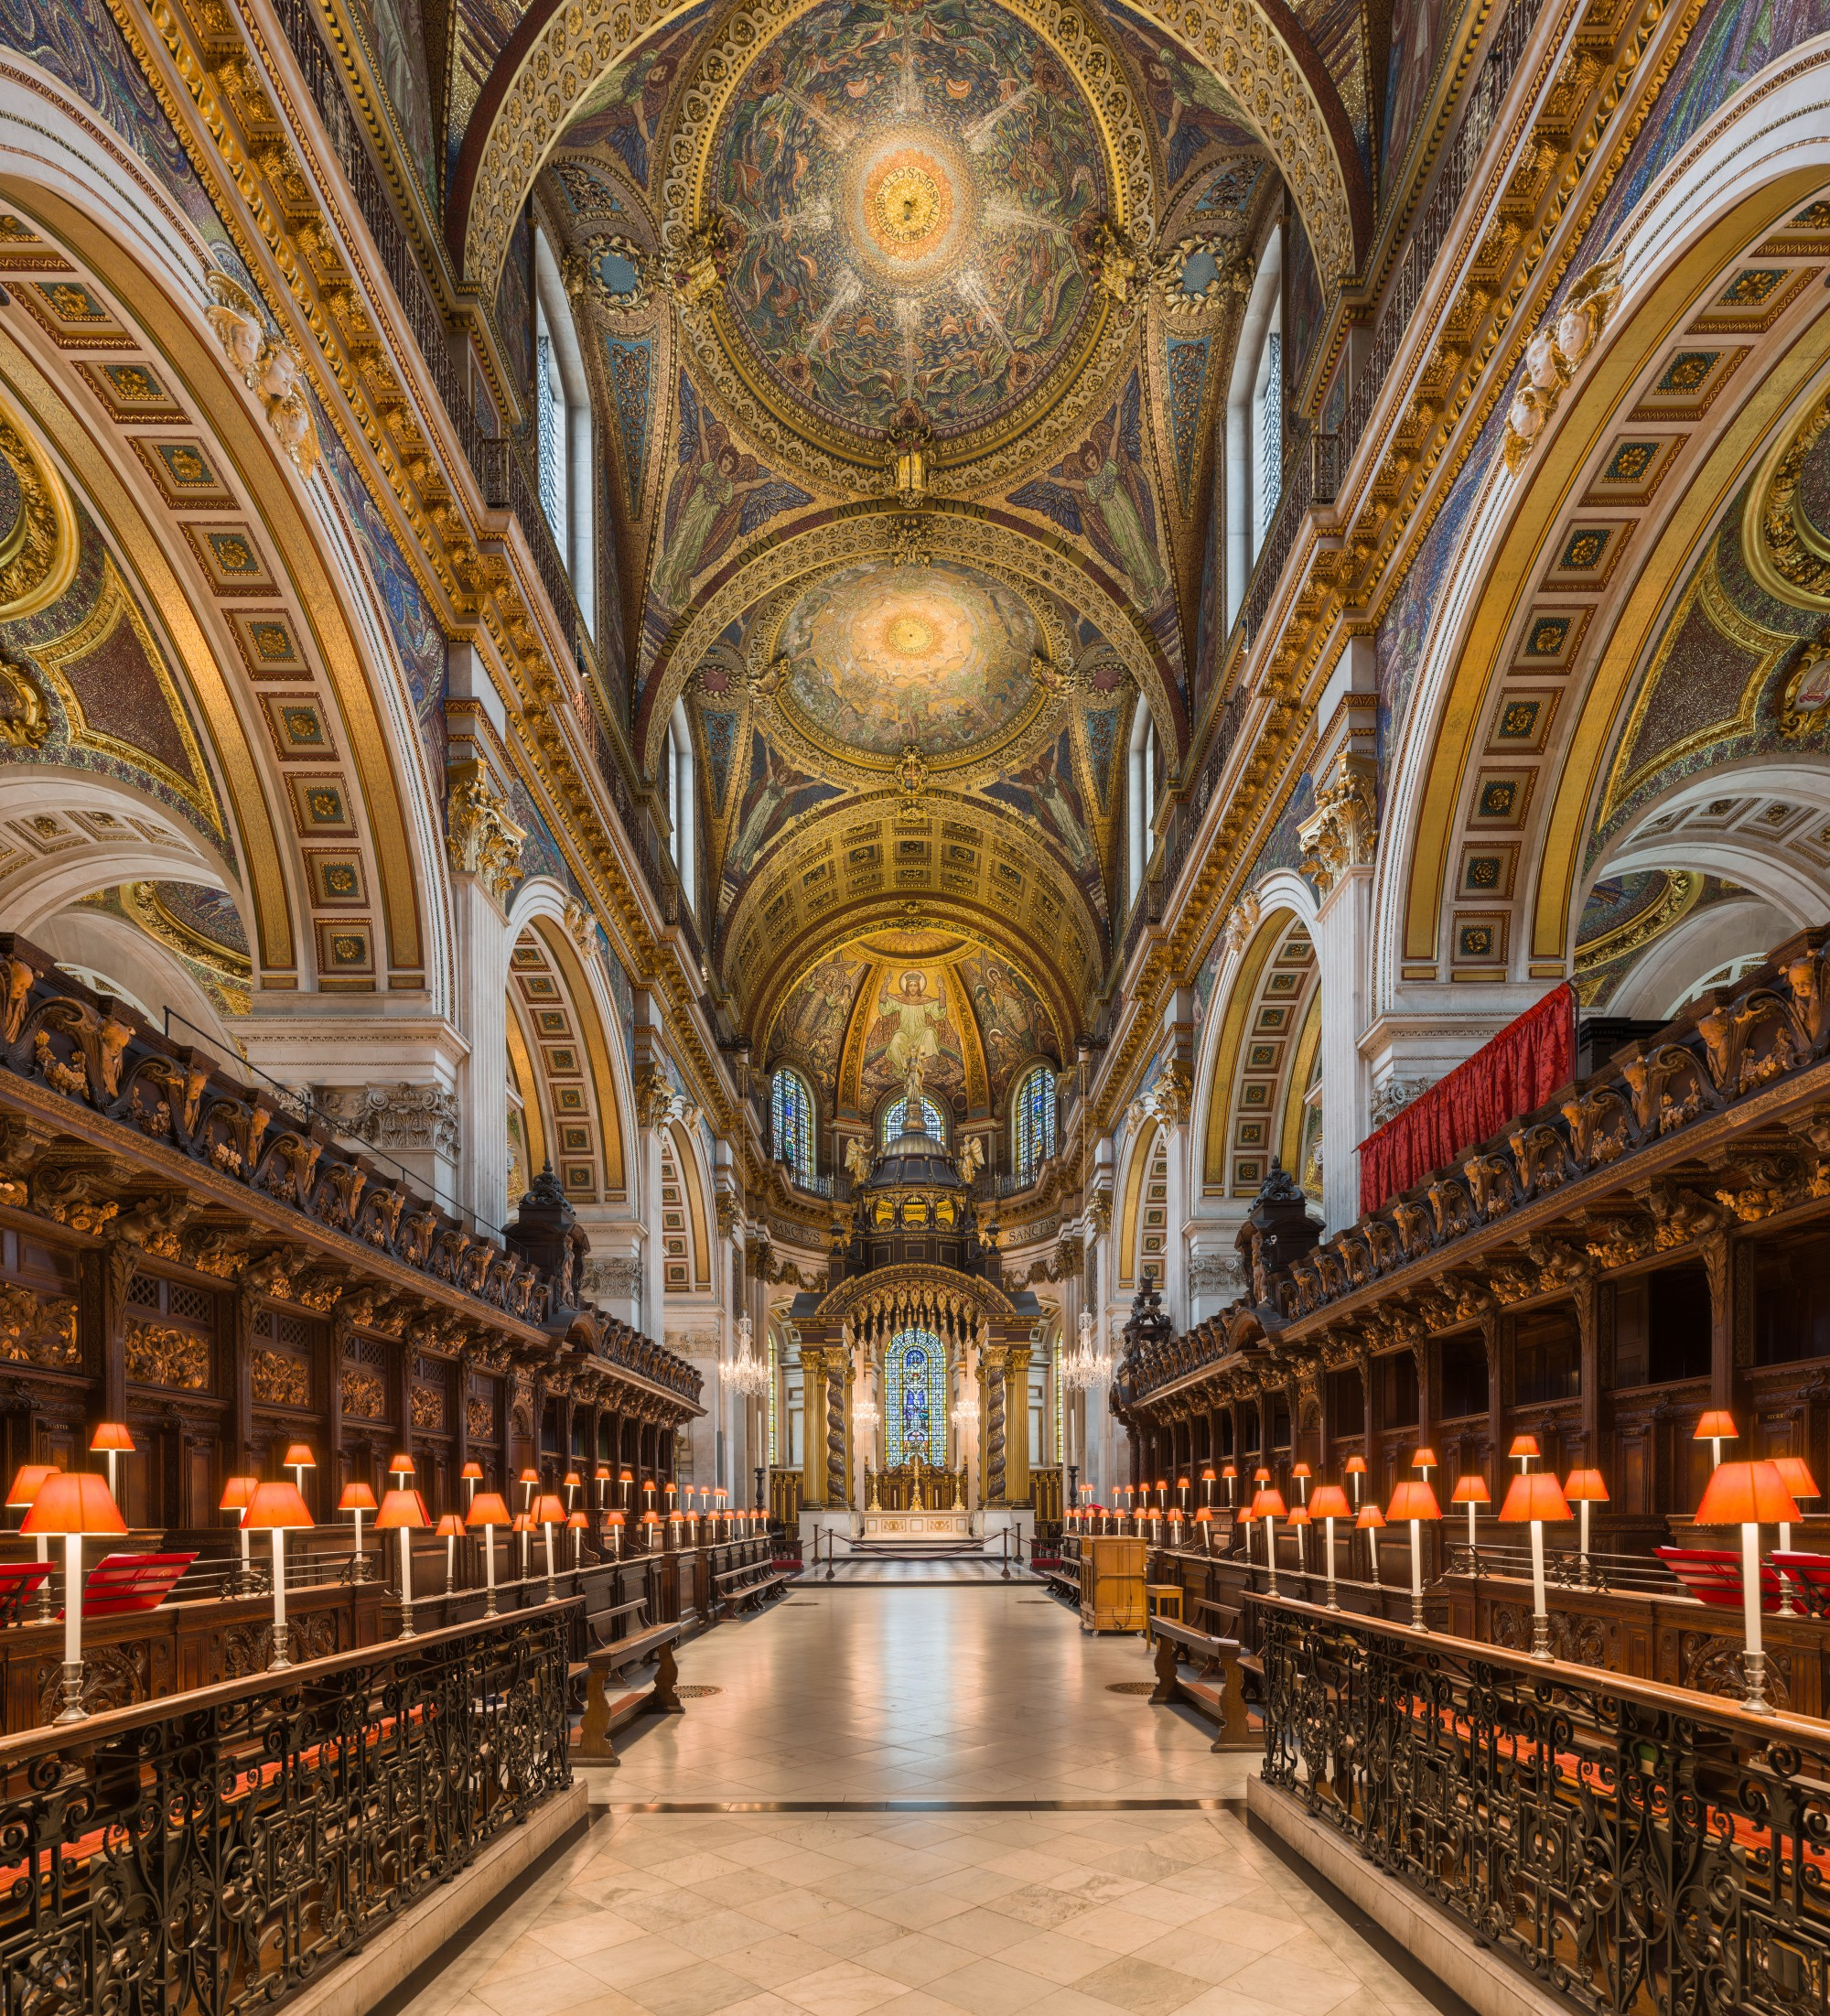 St_Paul's_Cathedral_Choir_looking_east,_London,_UK_-_Diliff